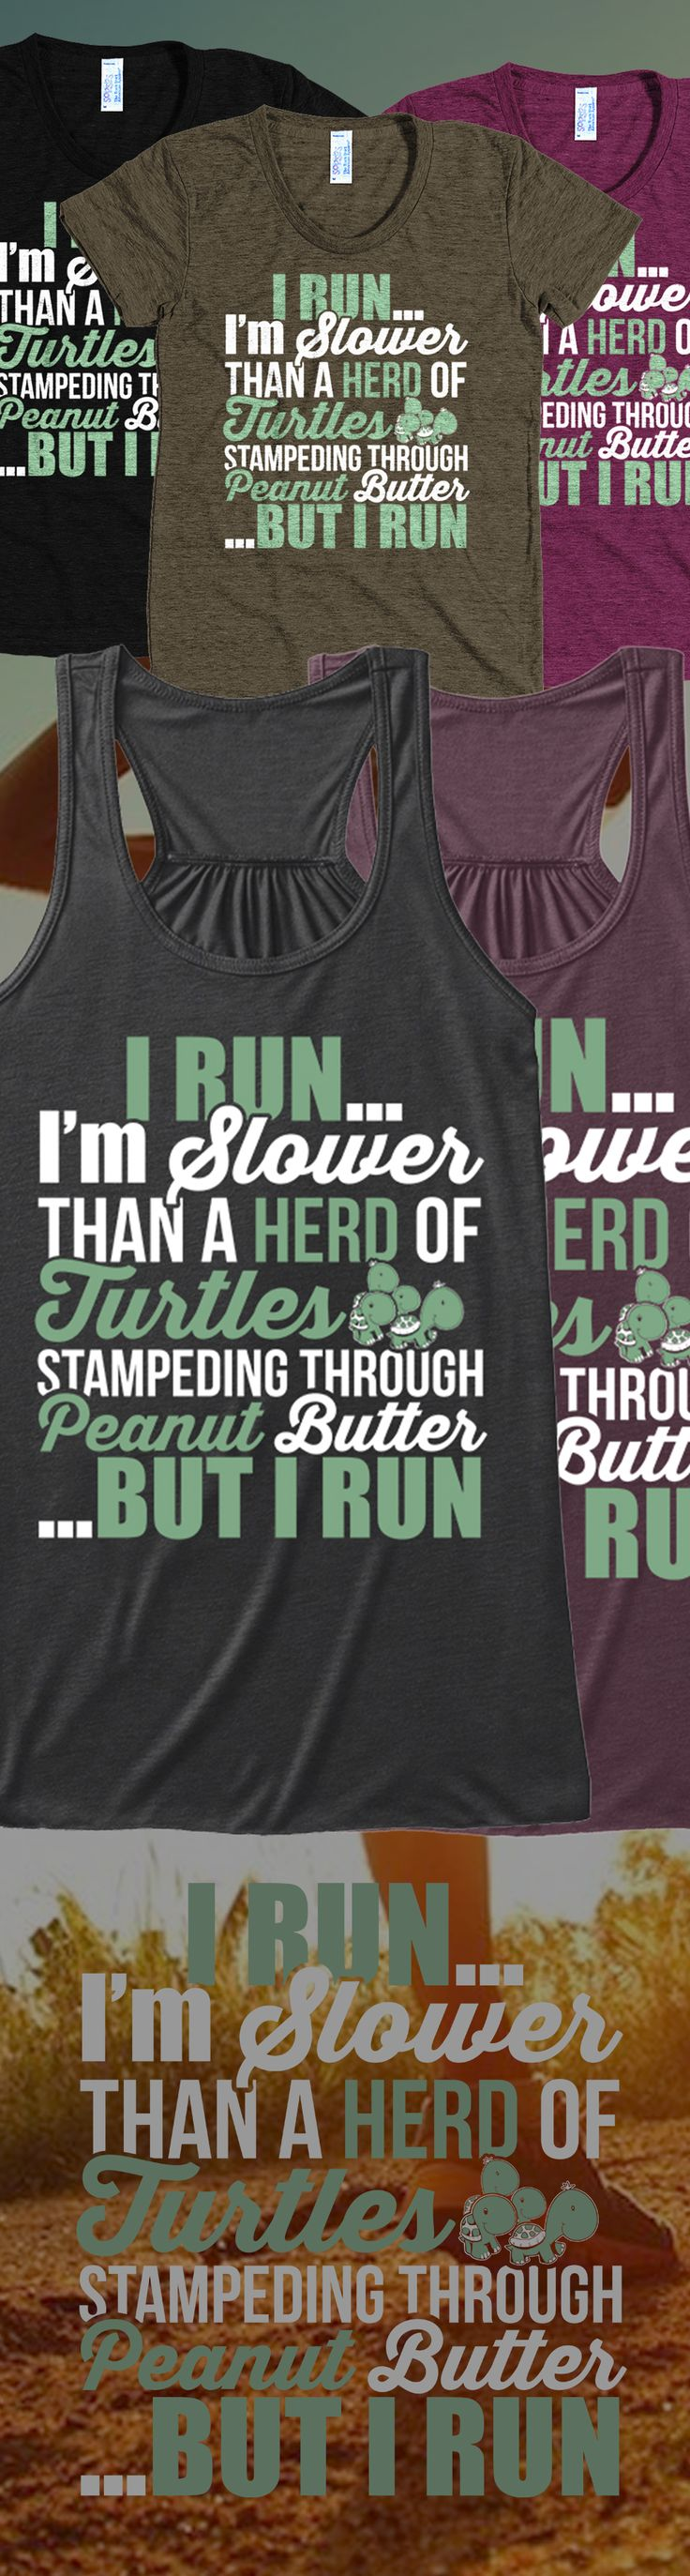 Love running?! Check out this awesome running t-shirt you will not find anywhere else. Not sold in stores and only 2 days left for free shipping! Grab yours or gift it to a friend, you will both love it